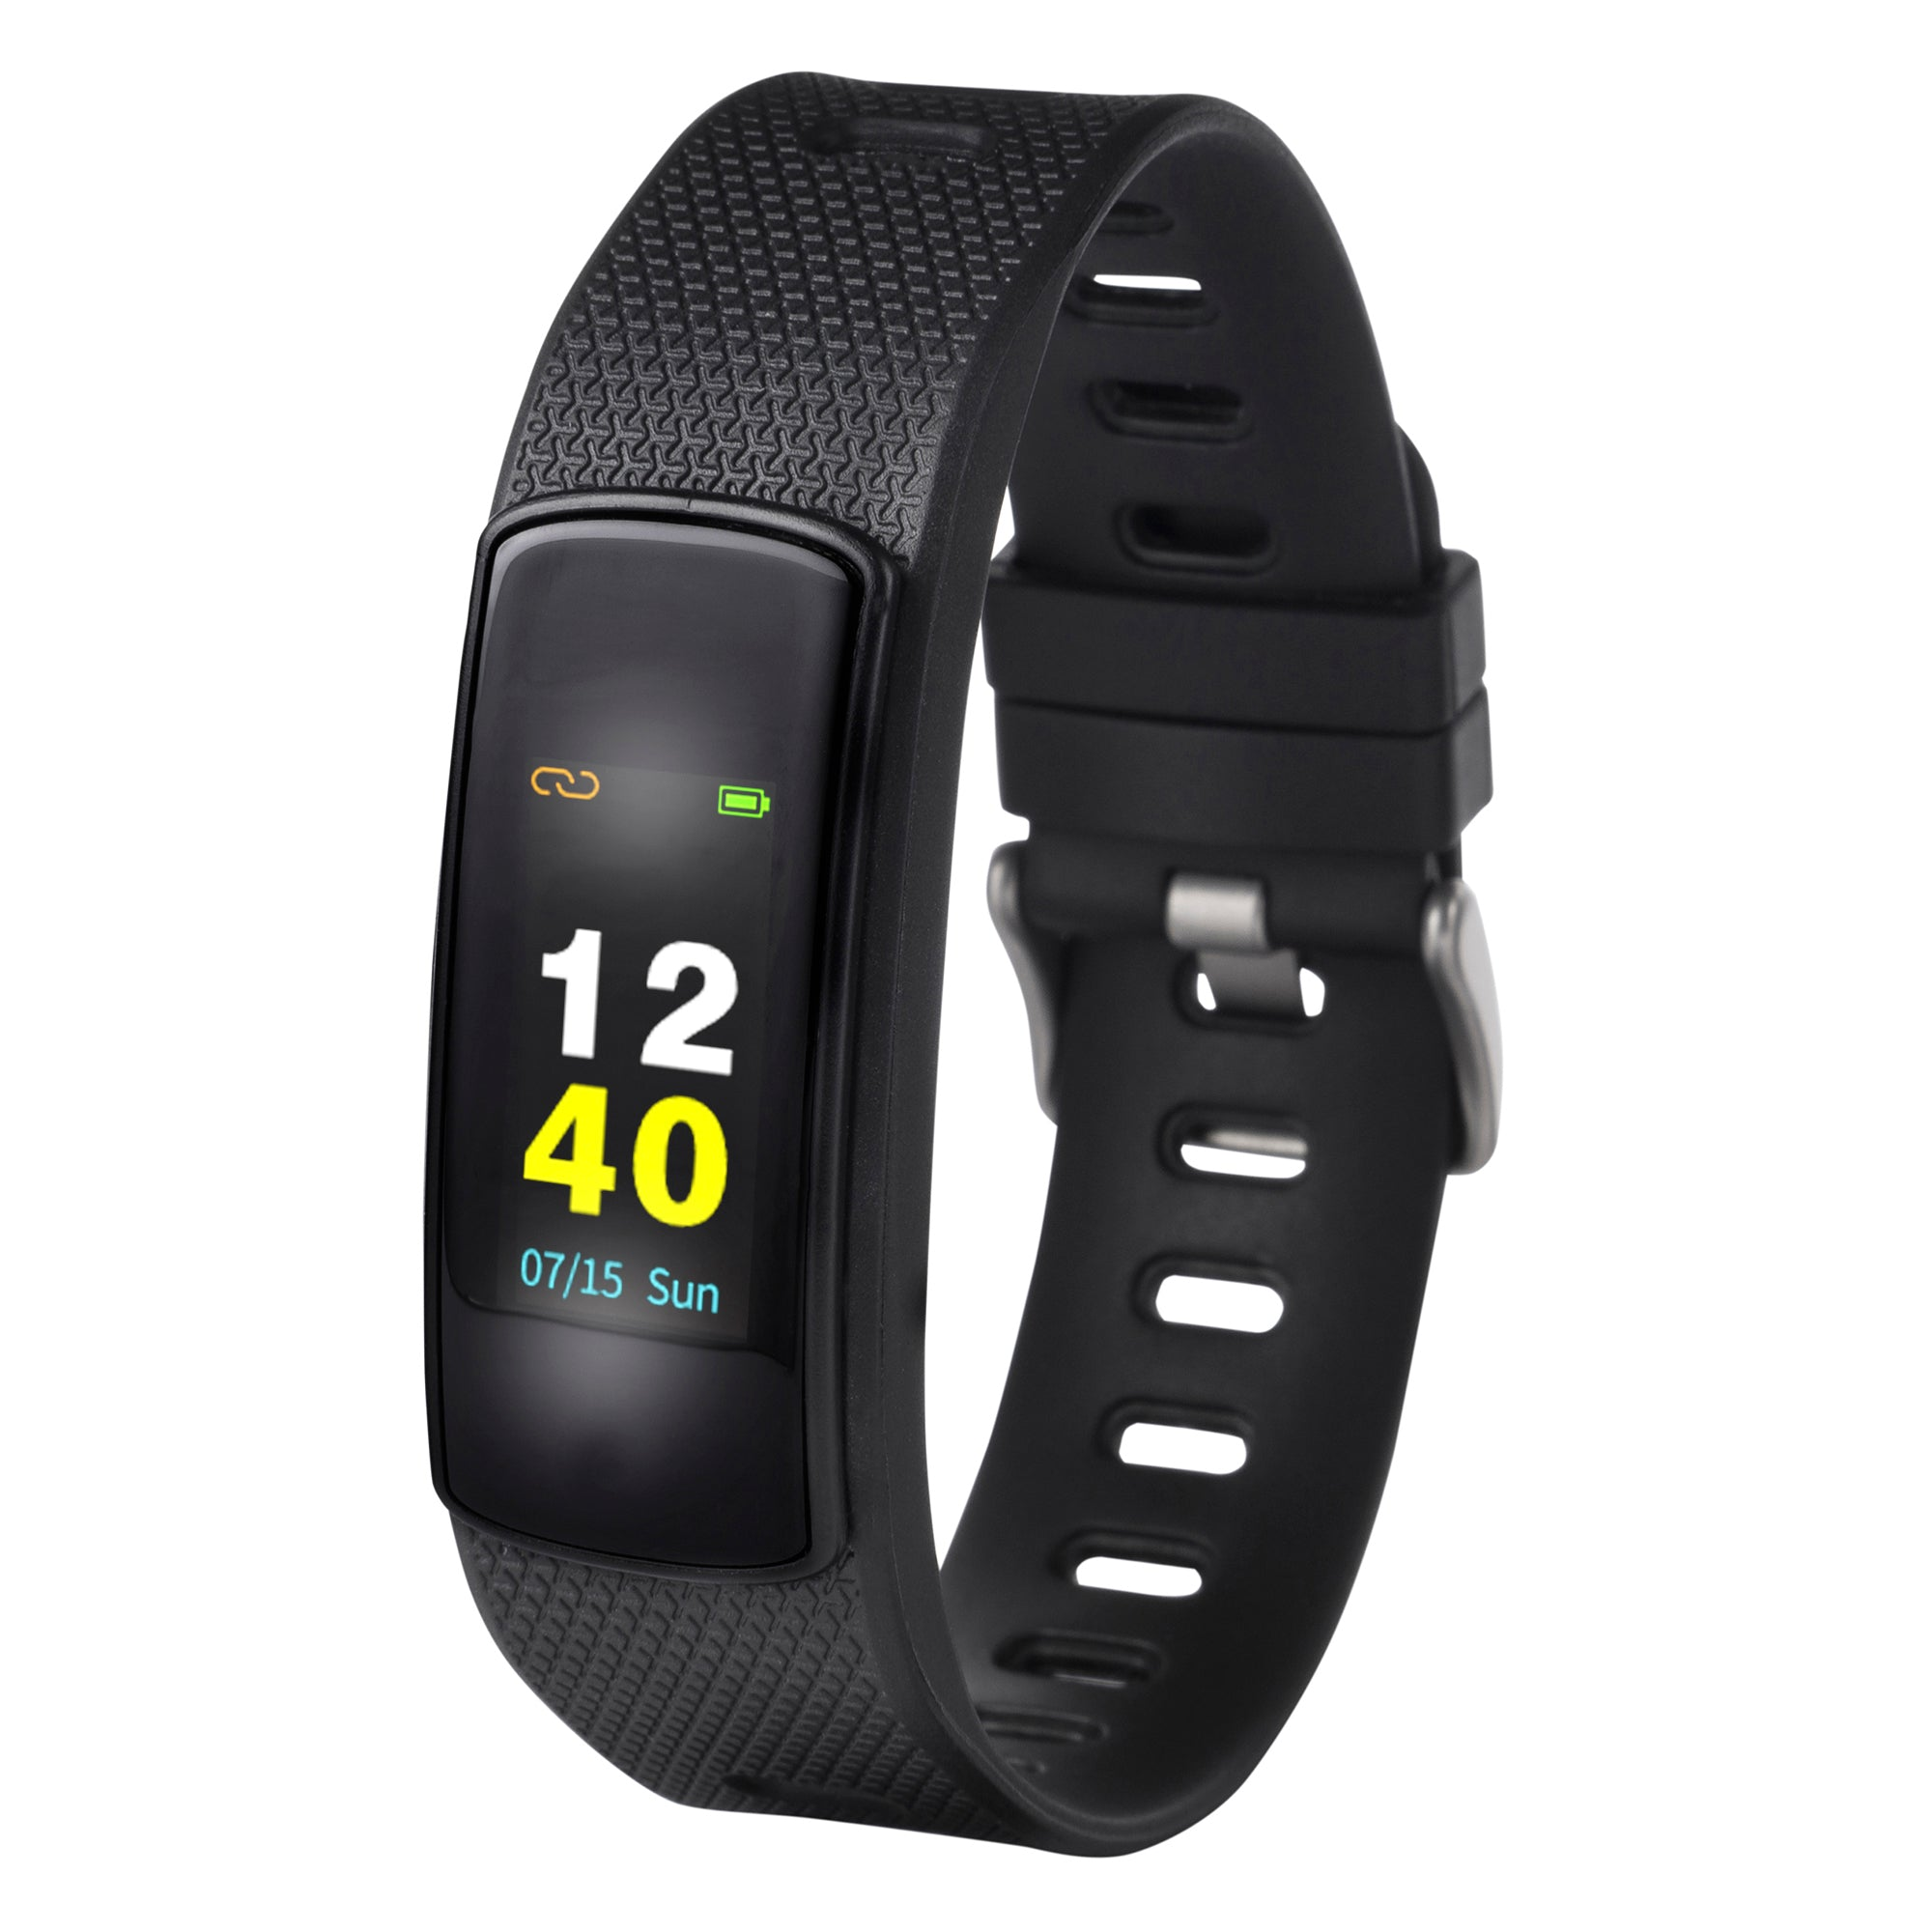 NUBAND FLASH HR2 TOUCH SMARTER ACTIVITY AND SLEEP TRACKER